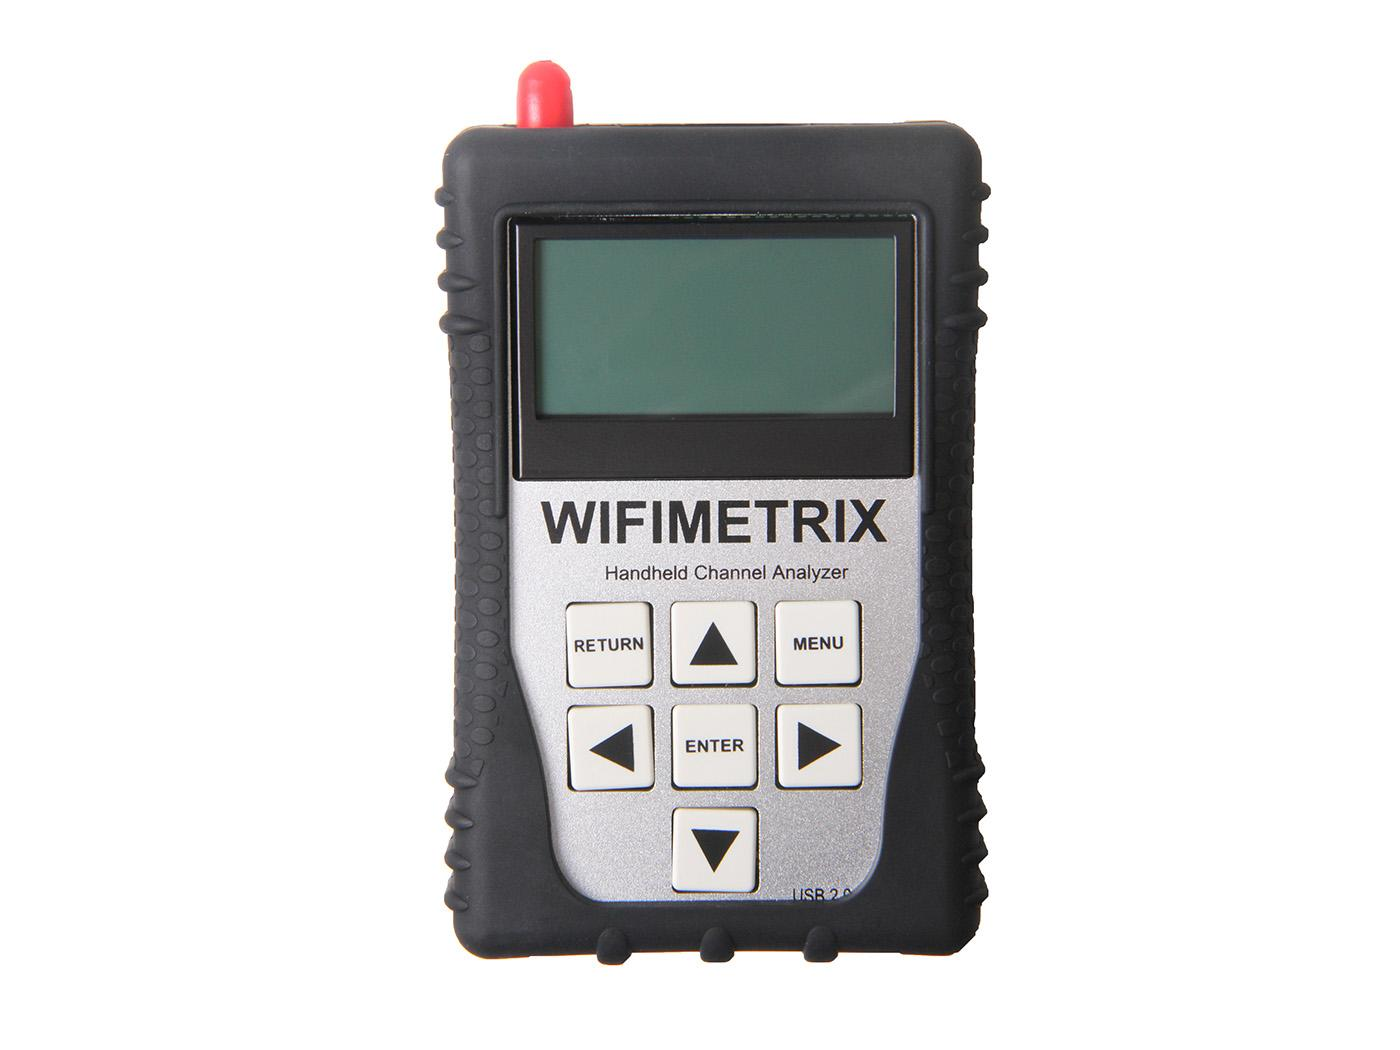 RF Explorer WifiMETRIX Wi-Fi networks analyzer